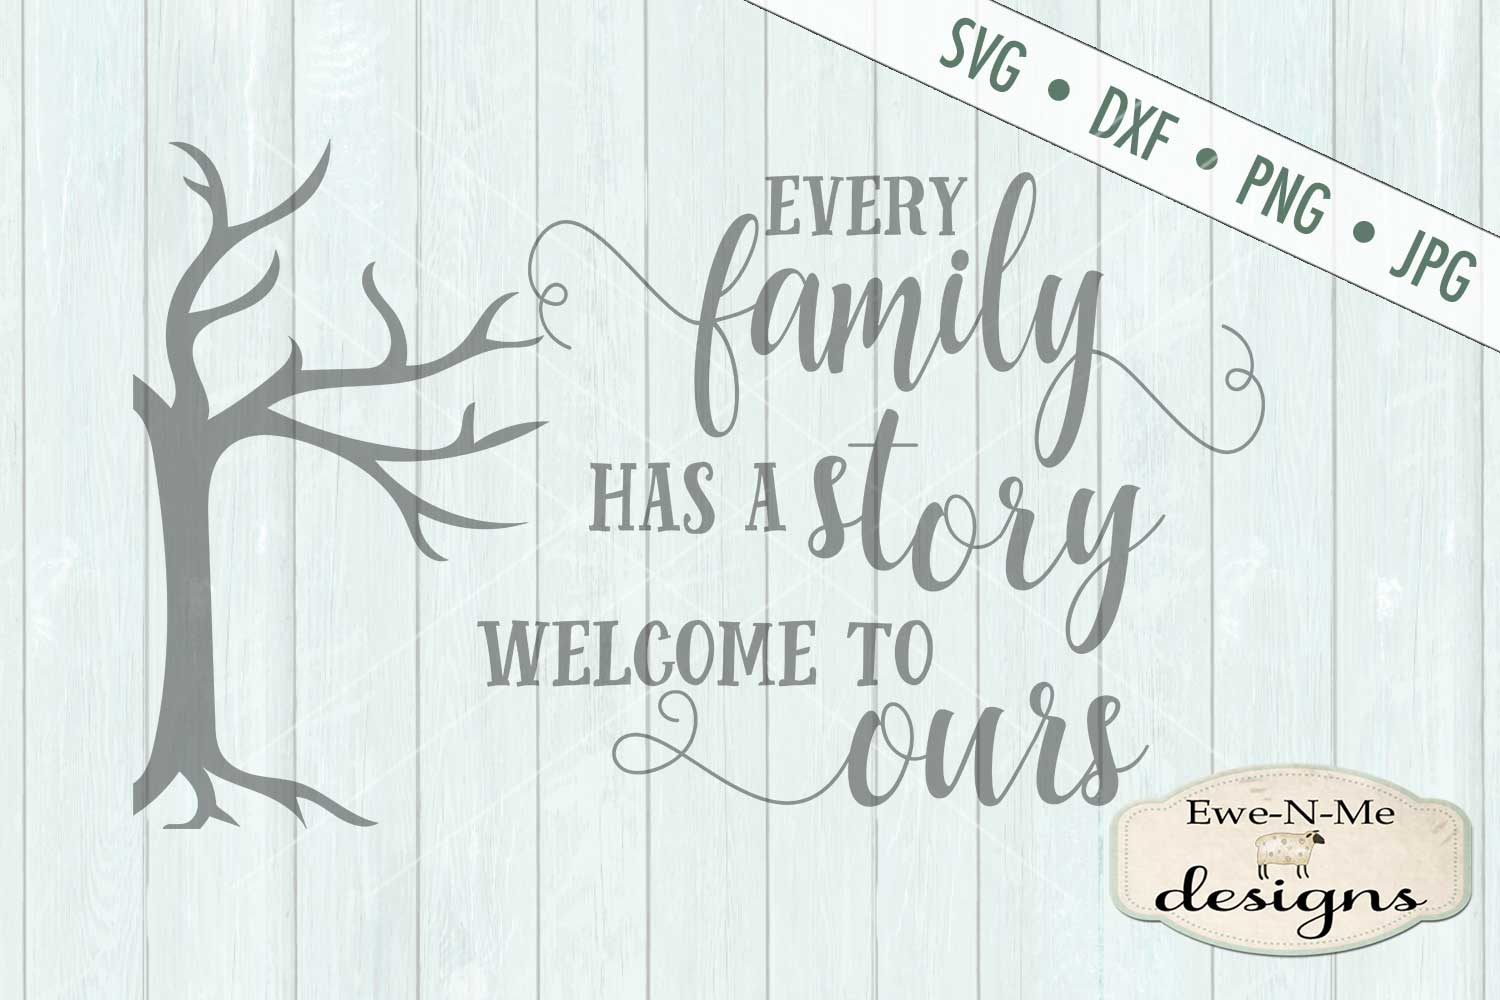 Every Family Has a Story - Family Tree - SVG DXF Files example image 2